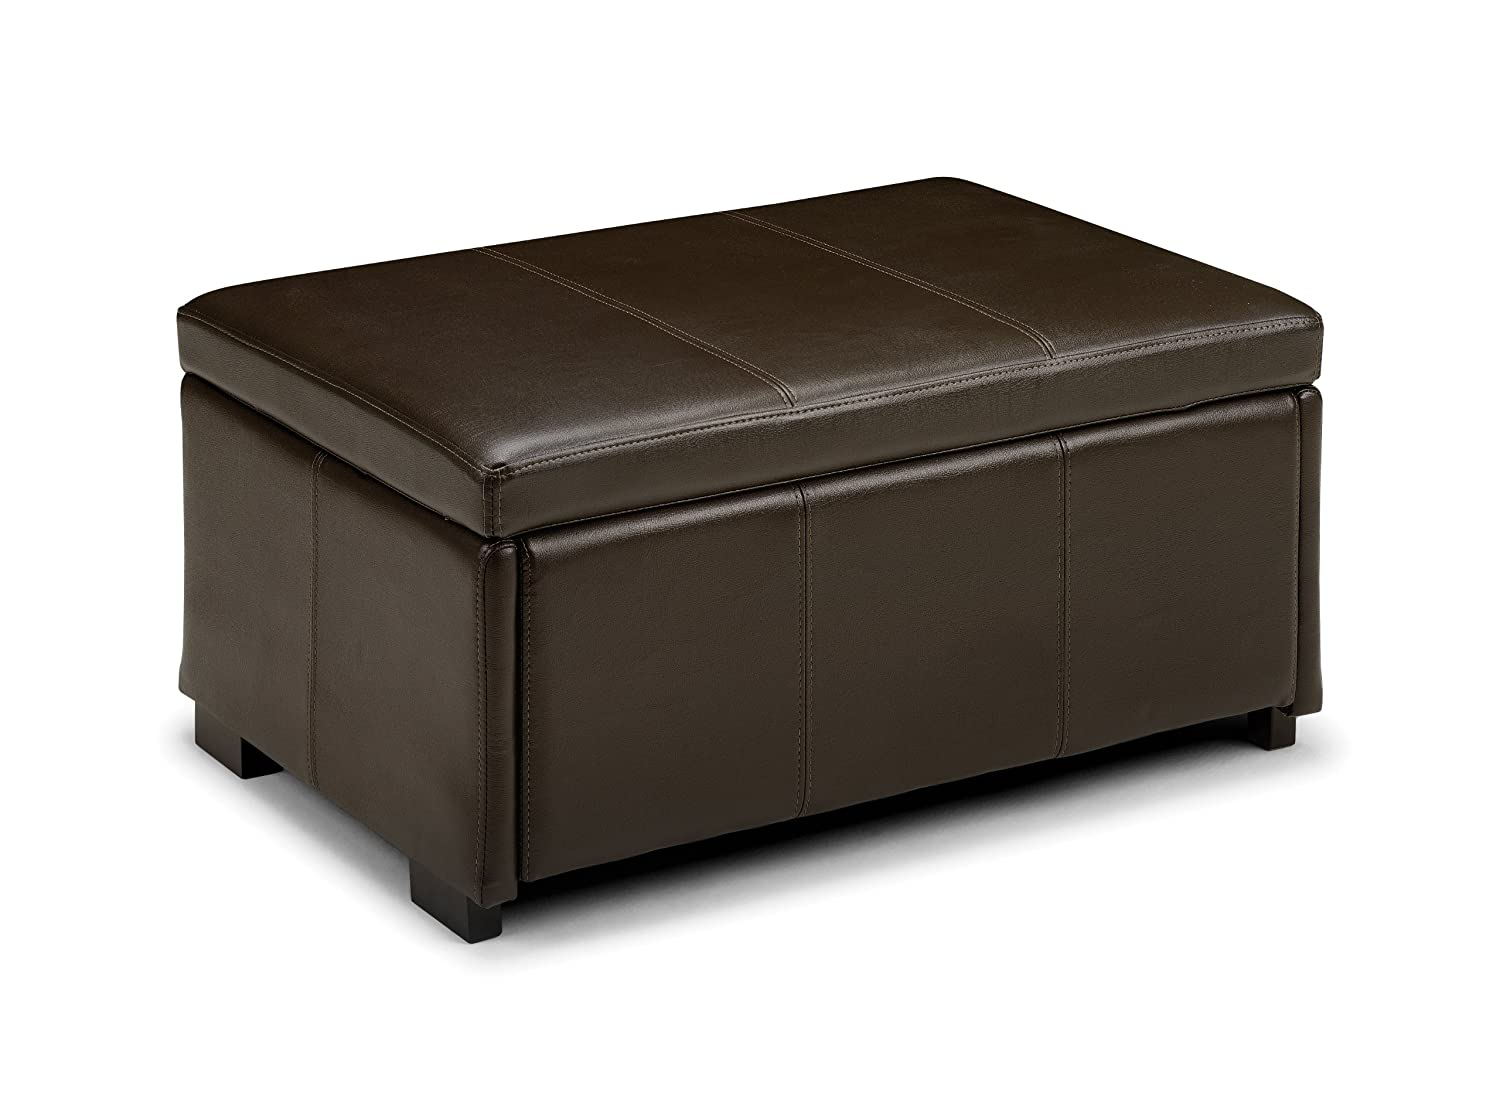 julian bowen vienna faux leather ottoman brown amazoncouk - Brown Leather Ottoman